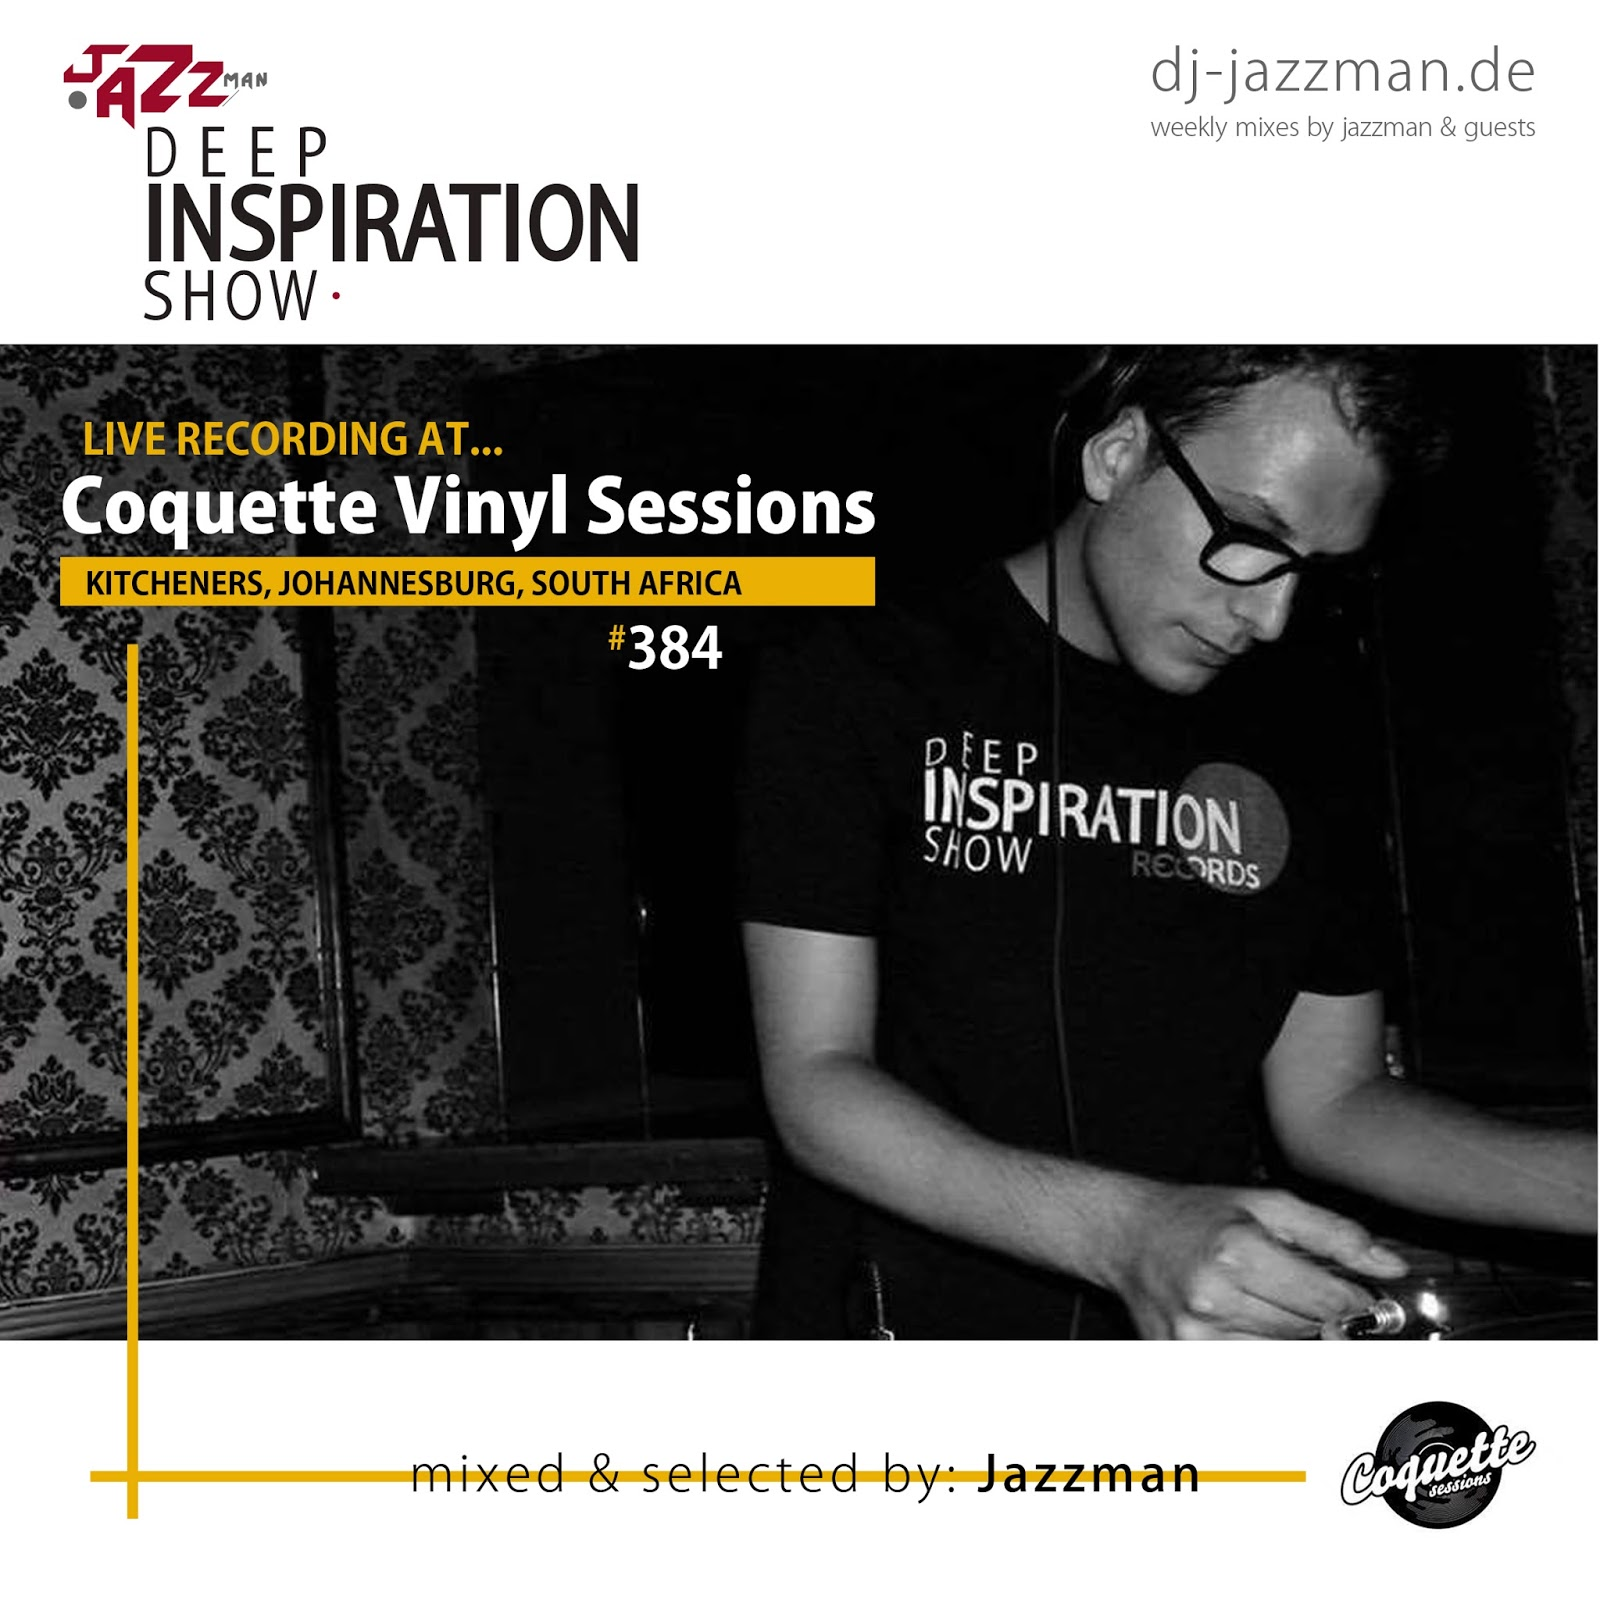 Various deep house stories vol 10 at juno download - Next Recording From The South Africa Tour Thanks Again To Mohau Billy For Having Me On His Monthly Coquette Vinyl Sessions Kitcheners